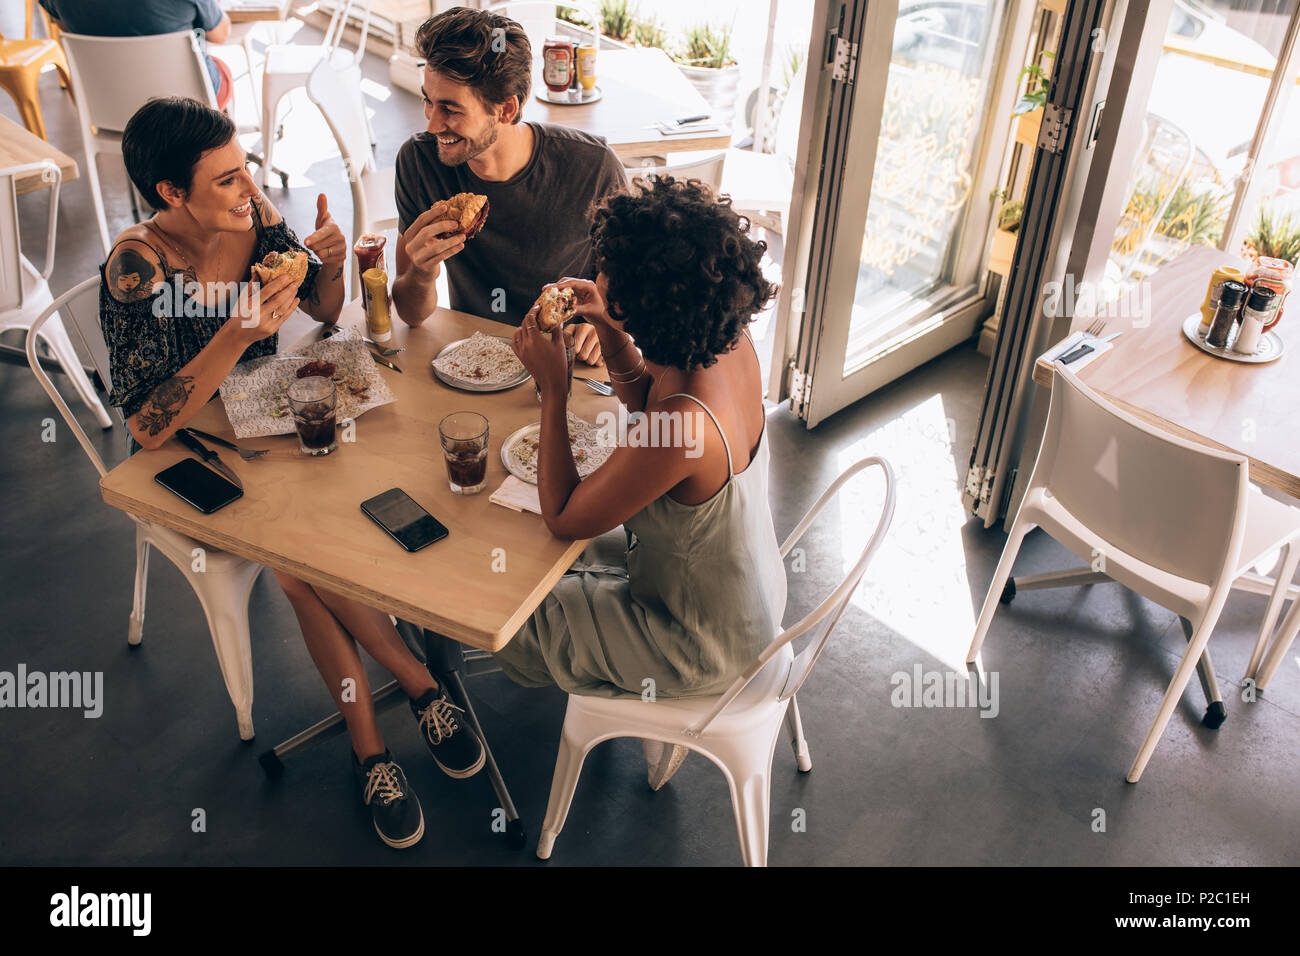 High angle view of three young friends having burger at a restaurant. Small group of man and women sitting around cafe table talking and eating. - Stock Image